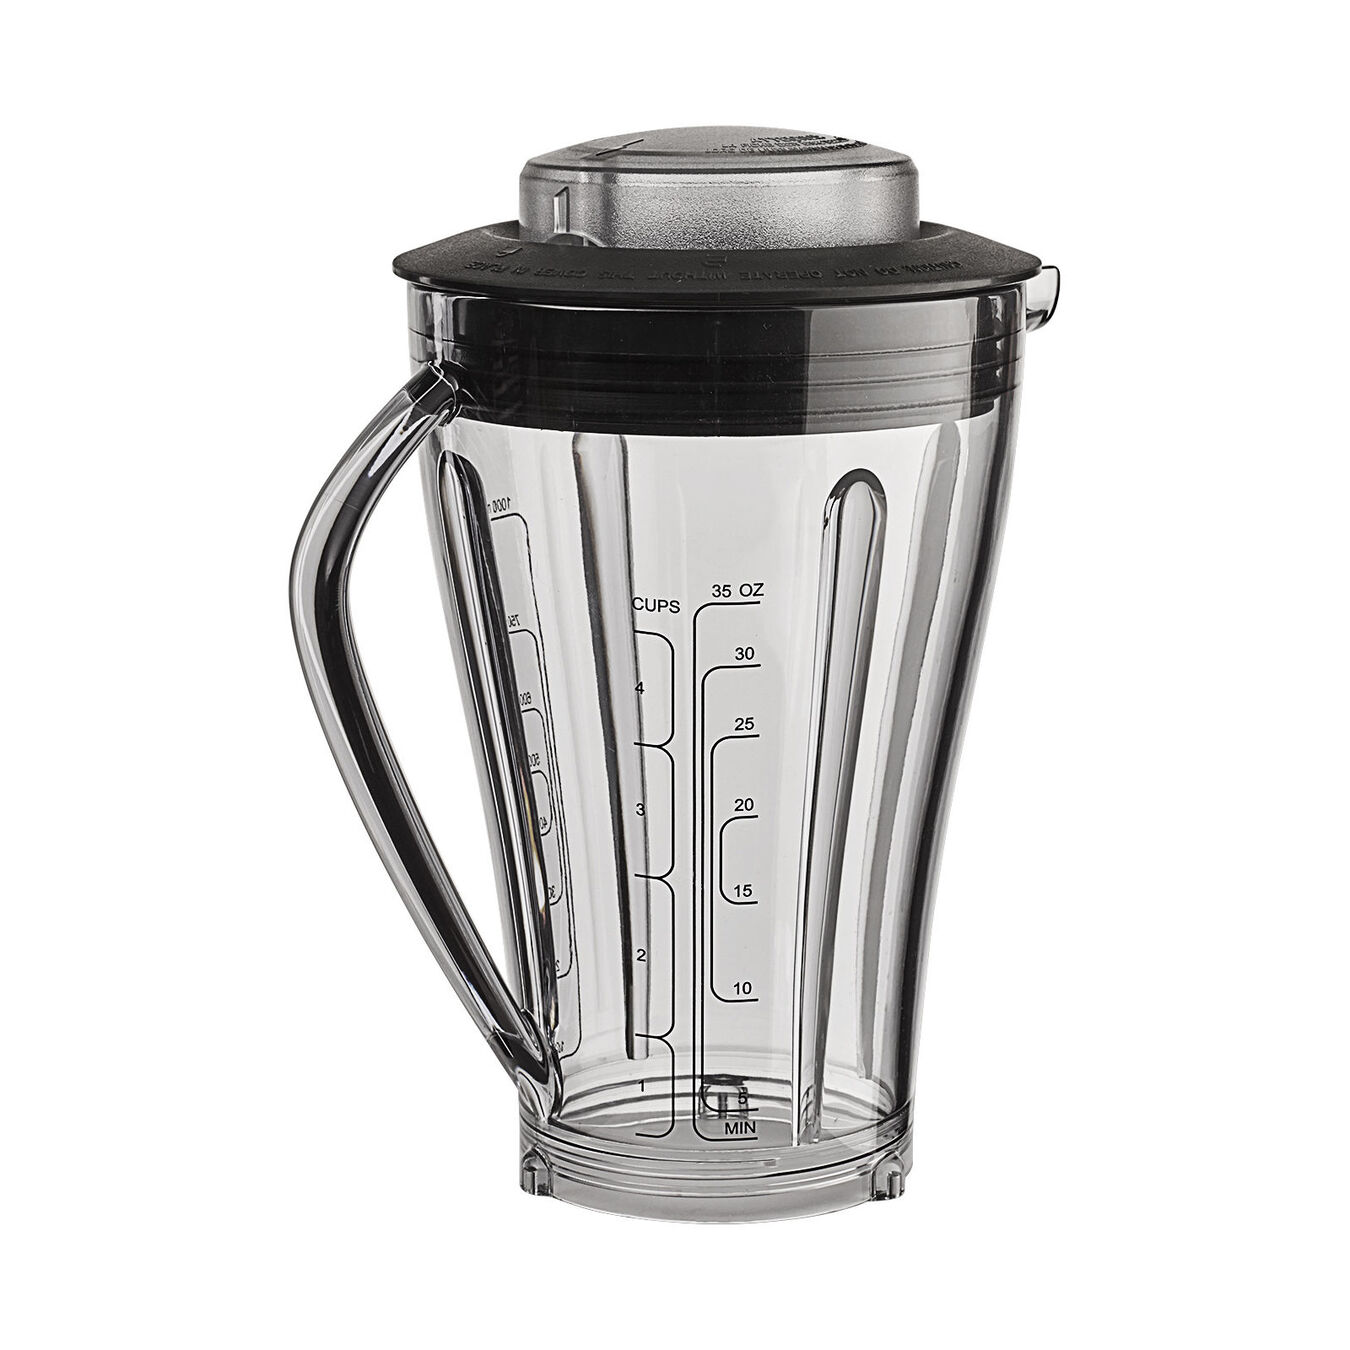 Blender universel, Grey,,large 3